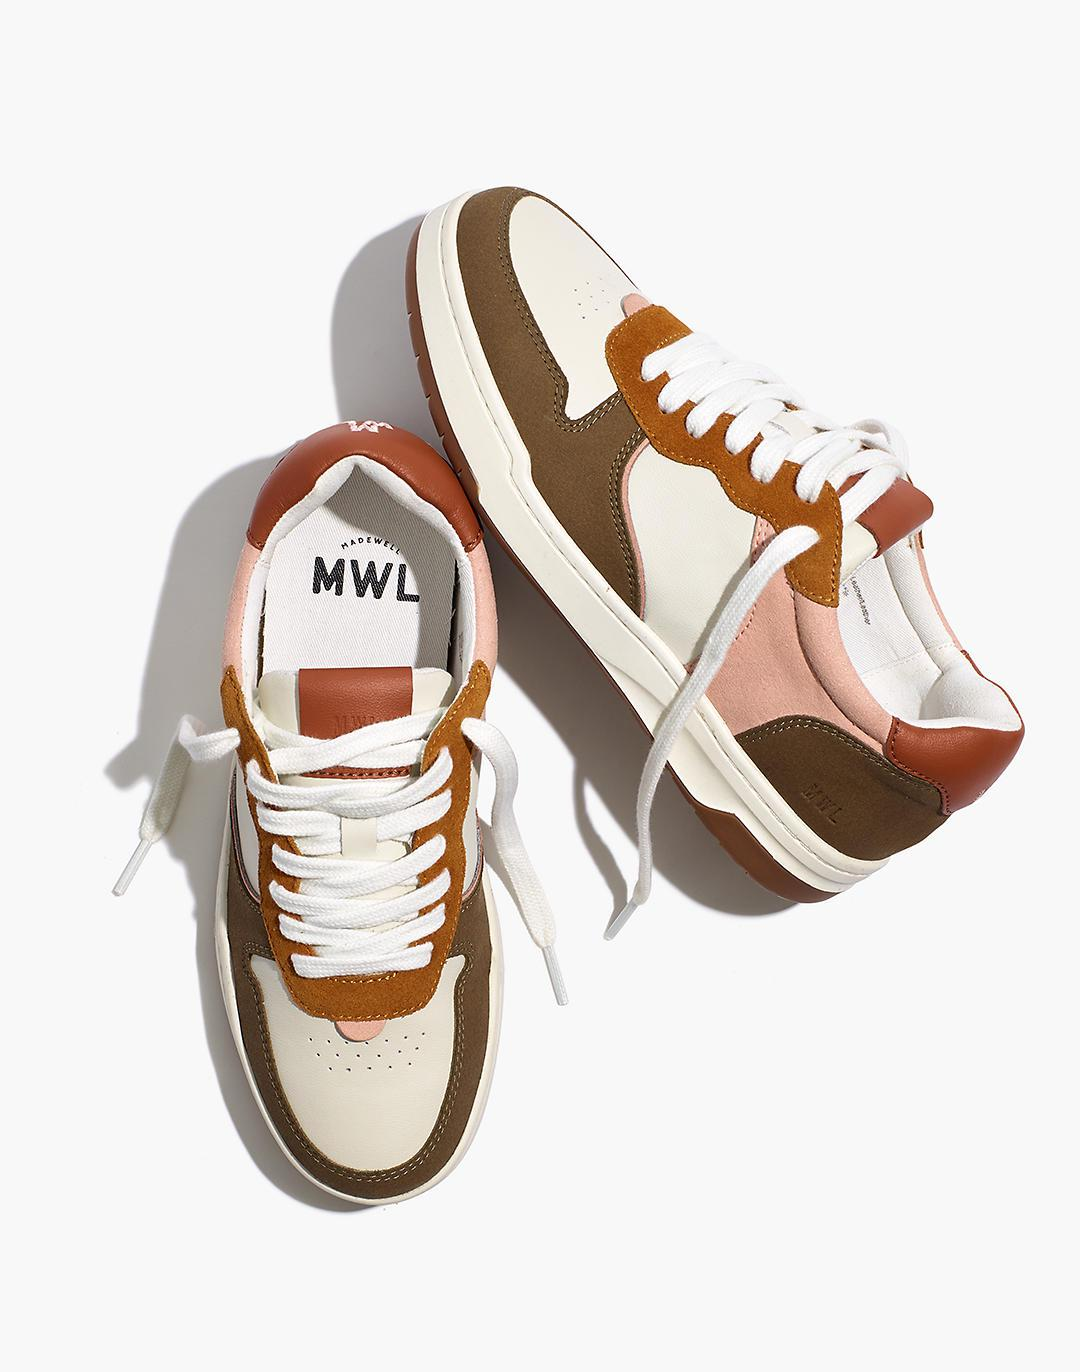 Court Sneakers in Nubuck and Recycled Leather